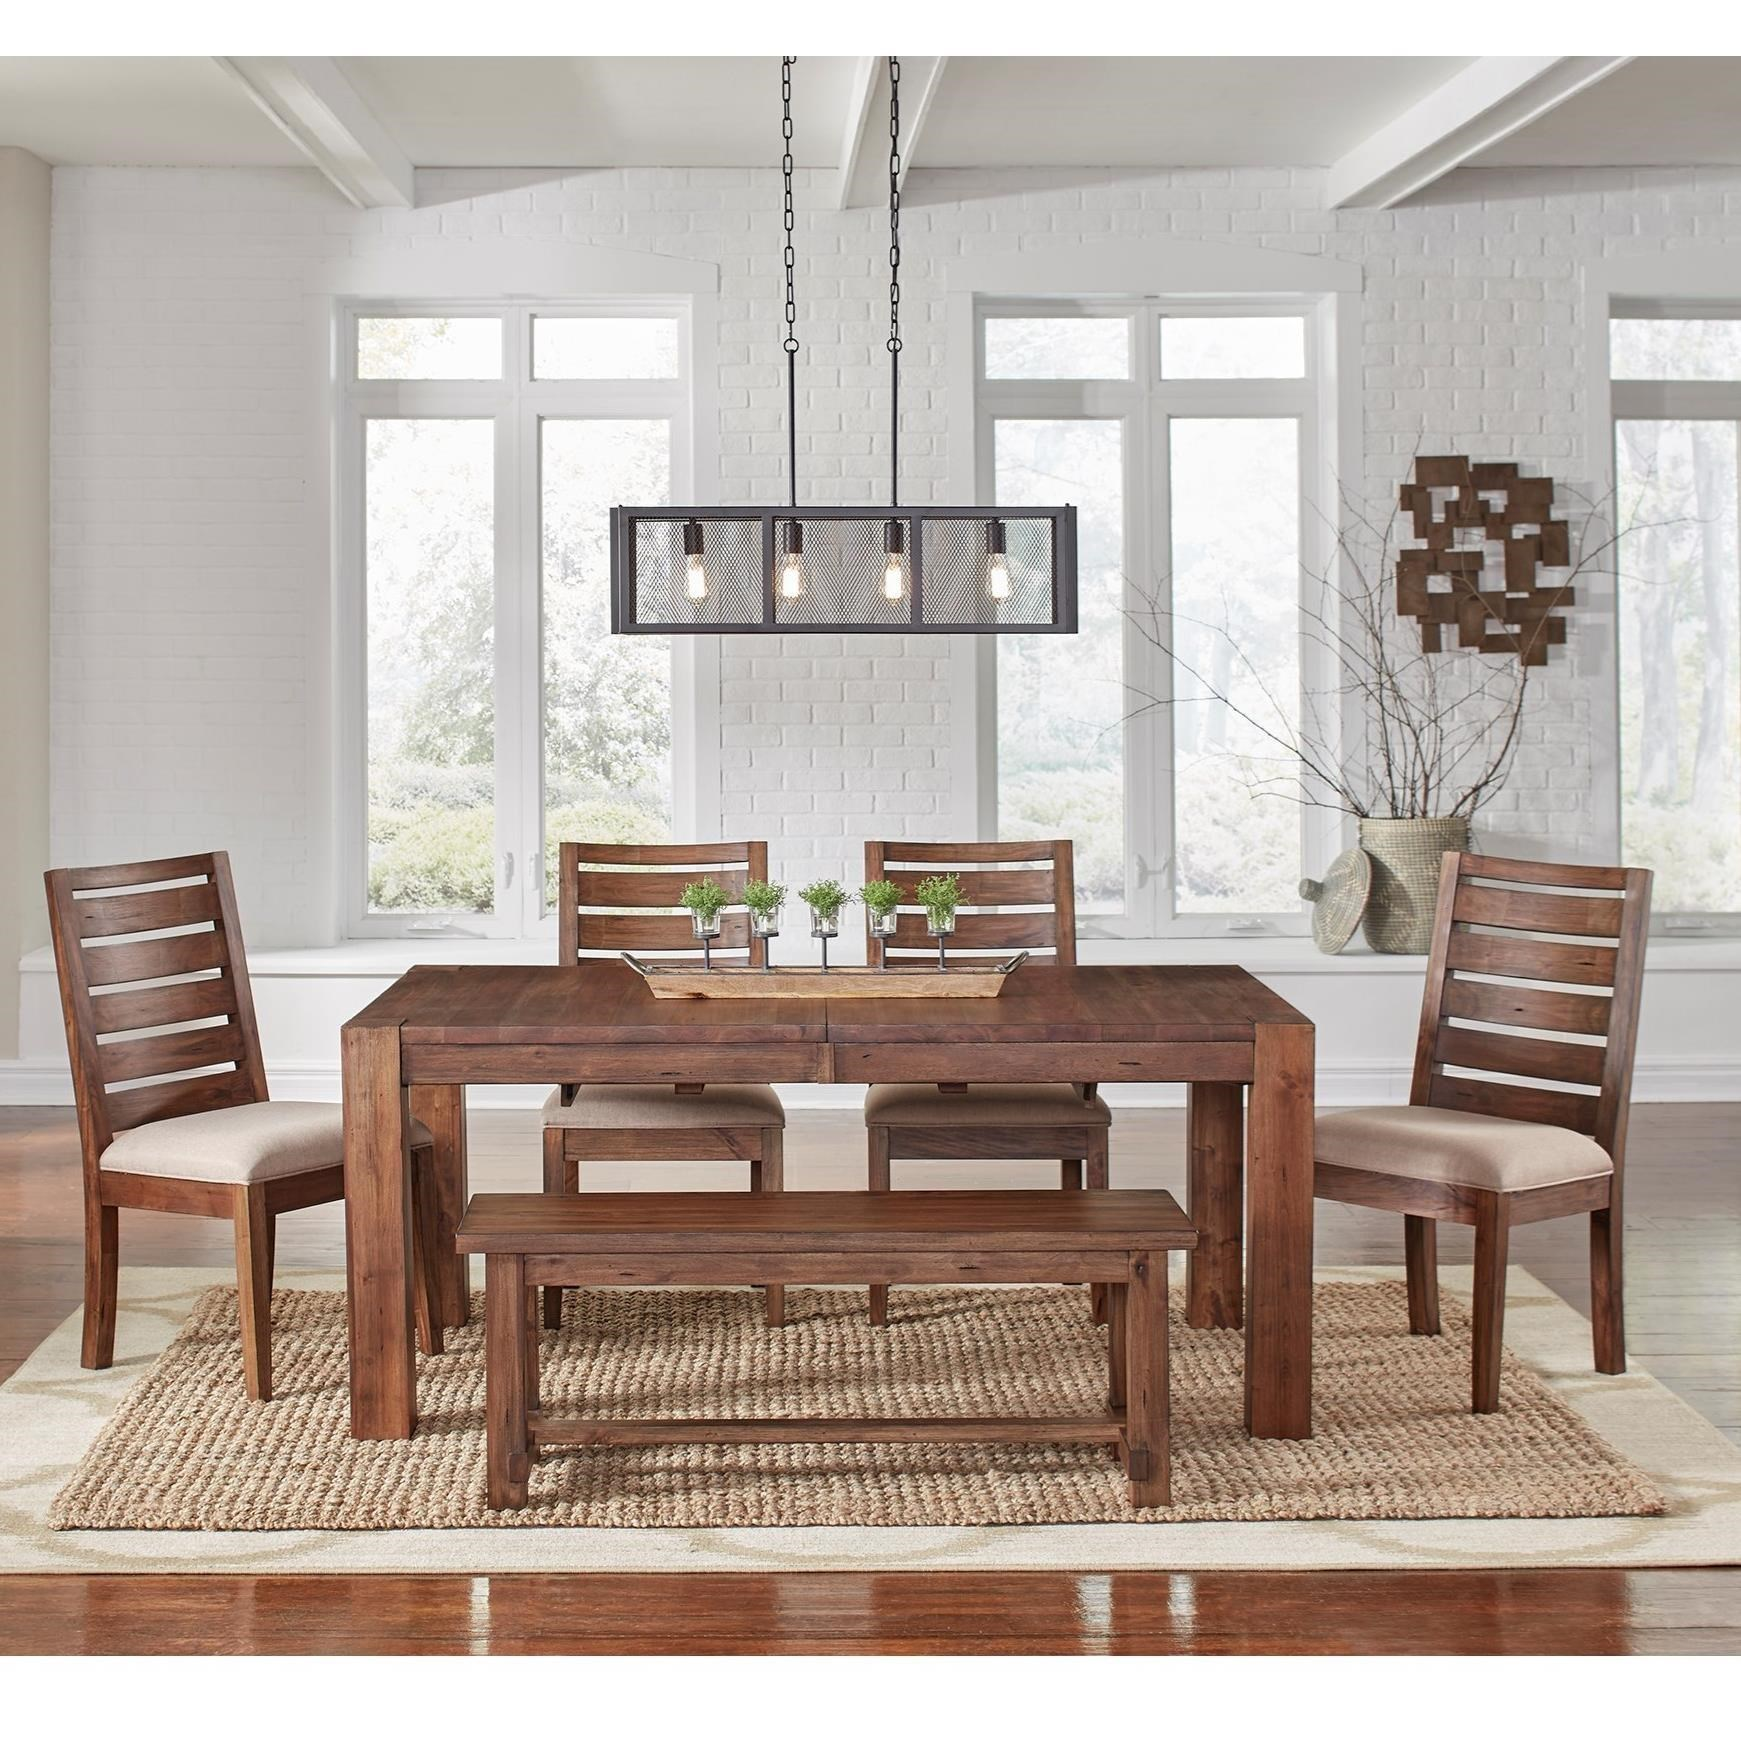 AAmerica Anacortes 5 Piece Dining Set - Item Number: ANA-SM-6-34-0+4x2-45-K